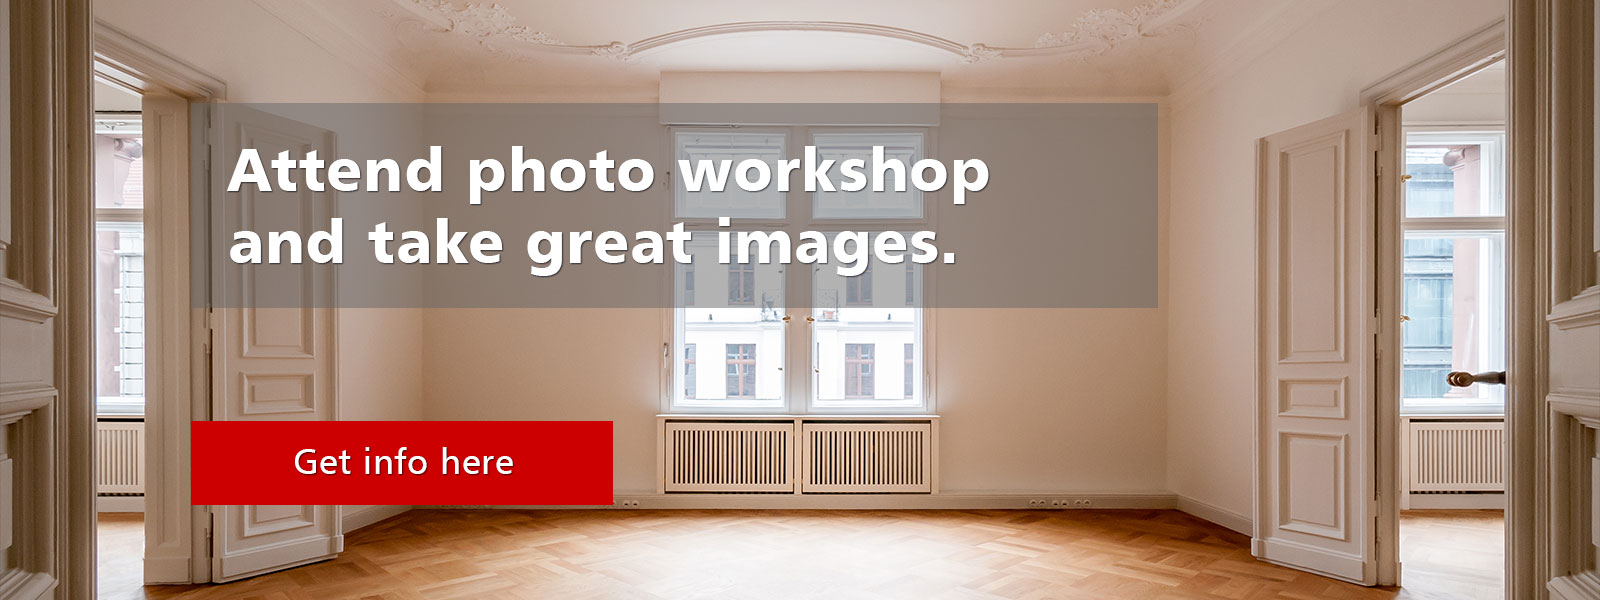 Workshop Real Estate Photography from 250 Euros per student.